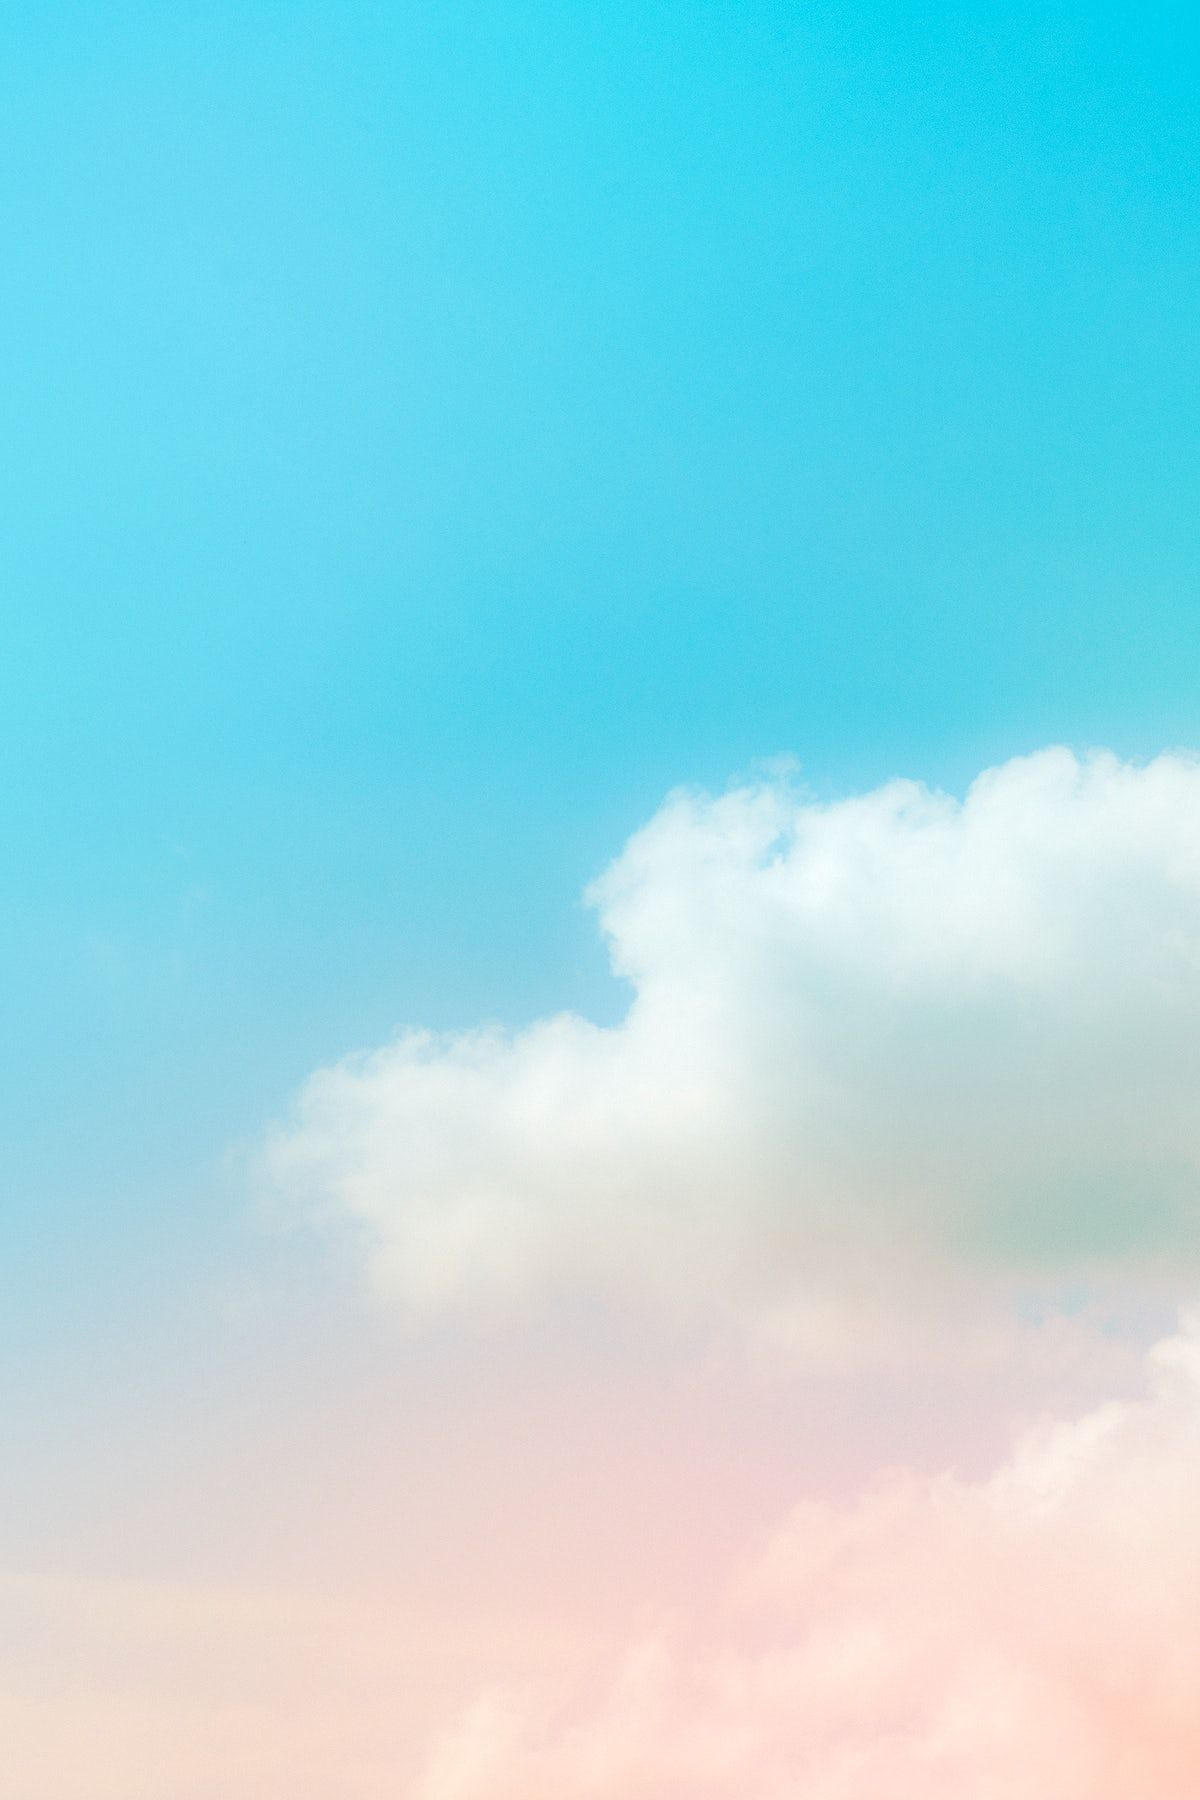 Download Free Illustration Of Pastel Pink Blue Gradient Sky With Clouds Background By Kwanloy About Sky Blue Sky In 2021 Sky And Clouds Blur Photo Background Clouds